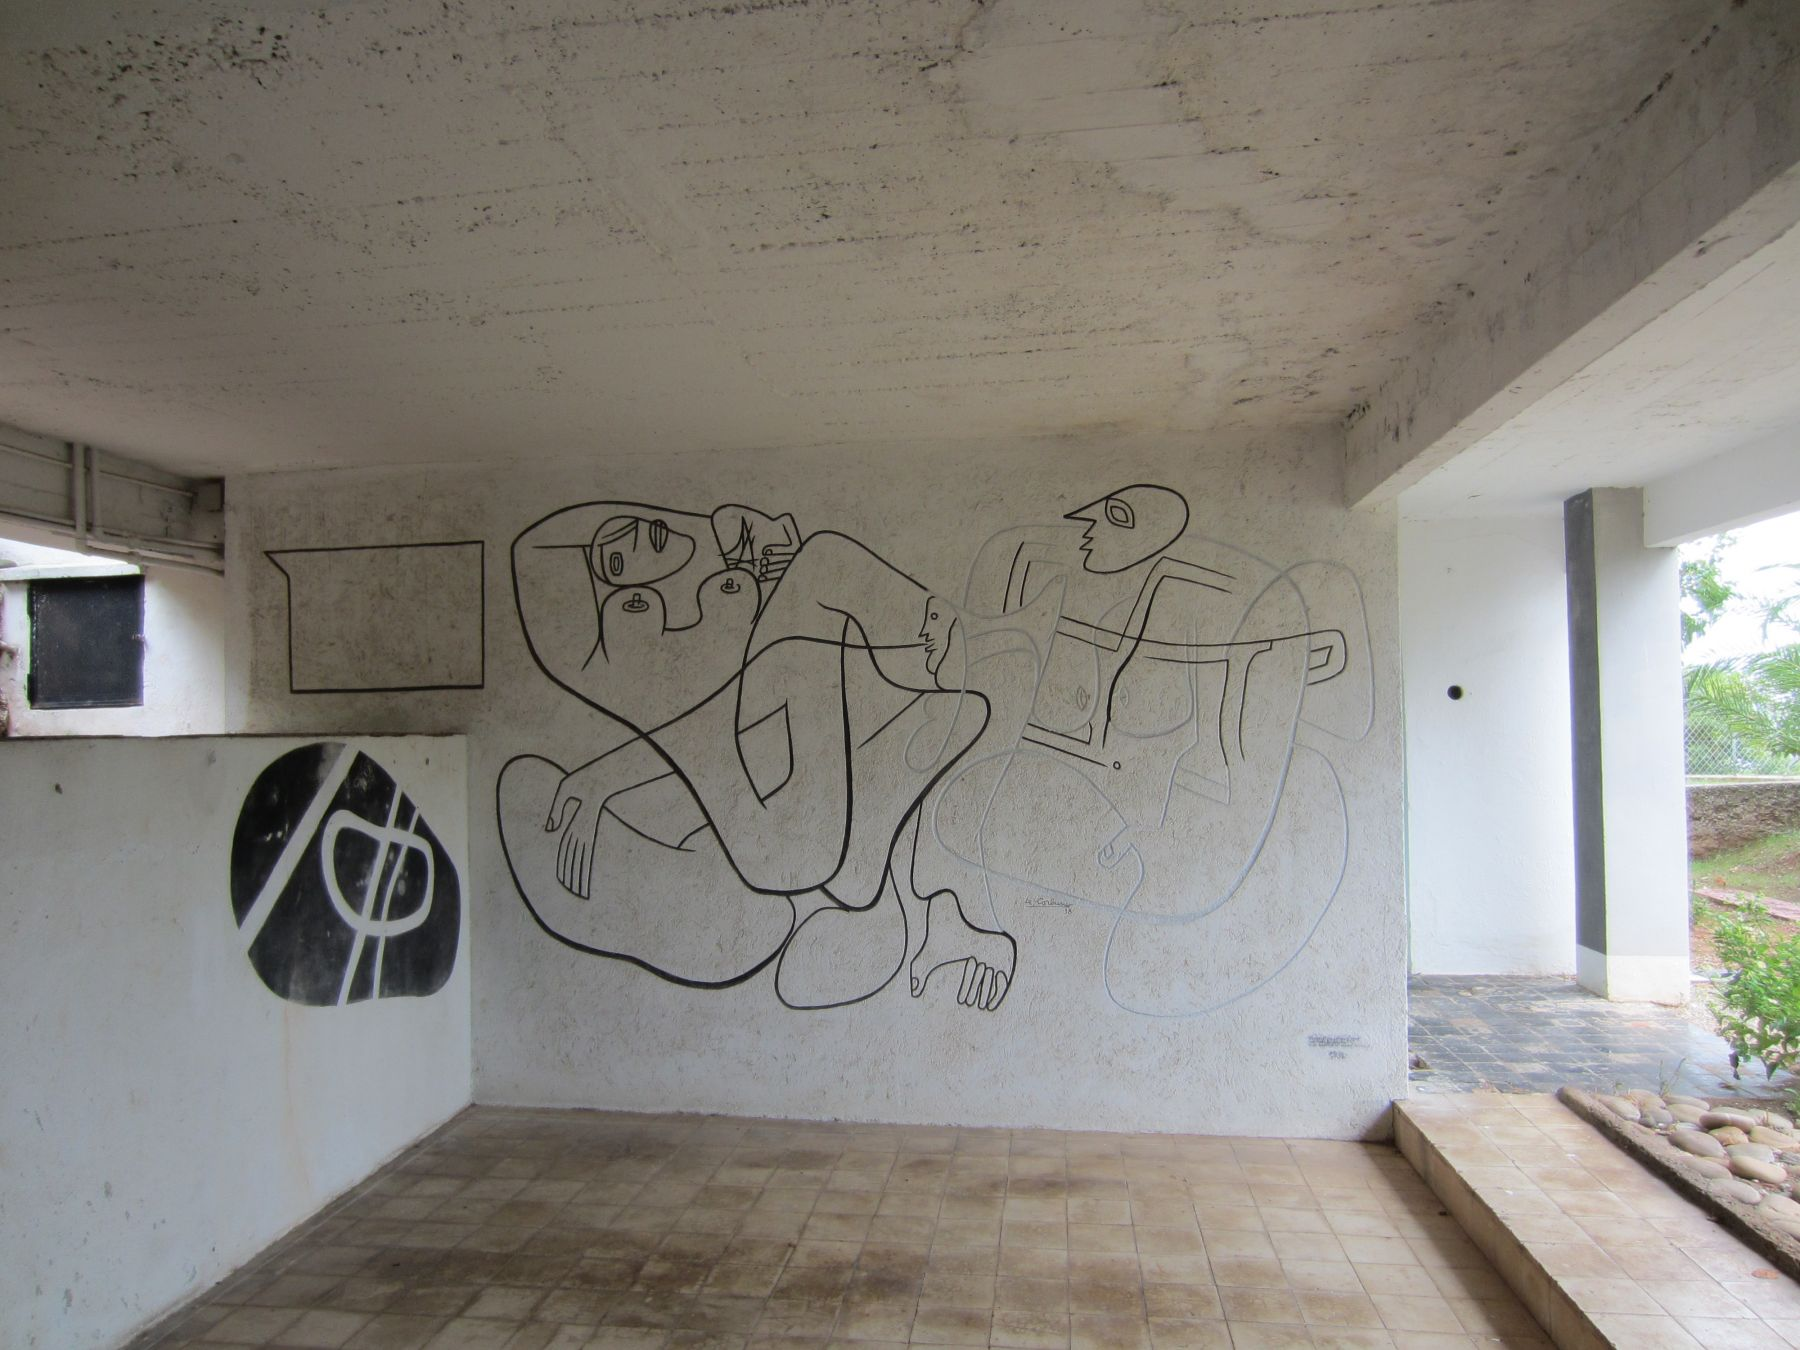 A mural by Le Corbusier under E.1027 © Michelle Brown